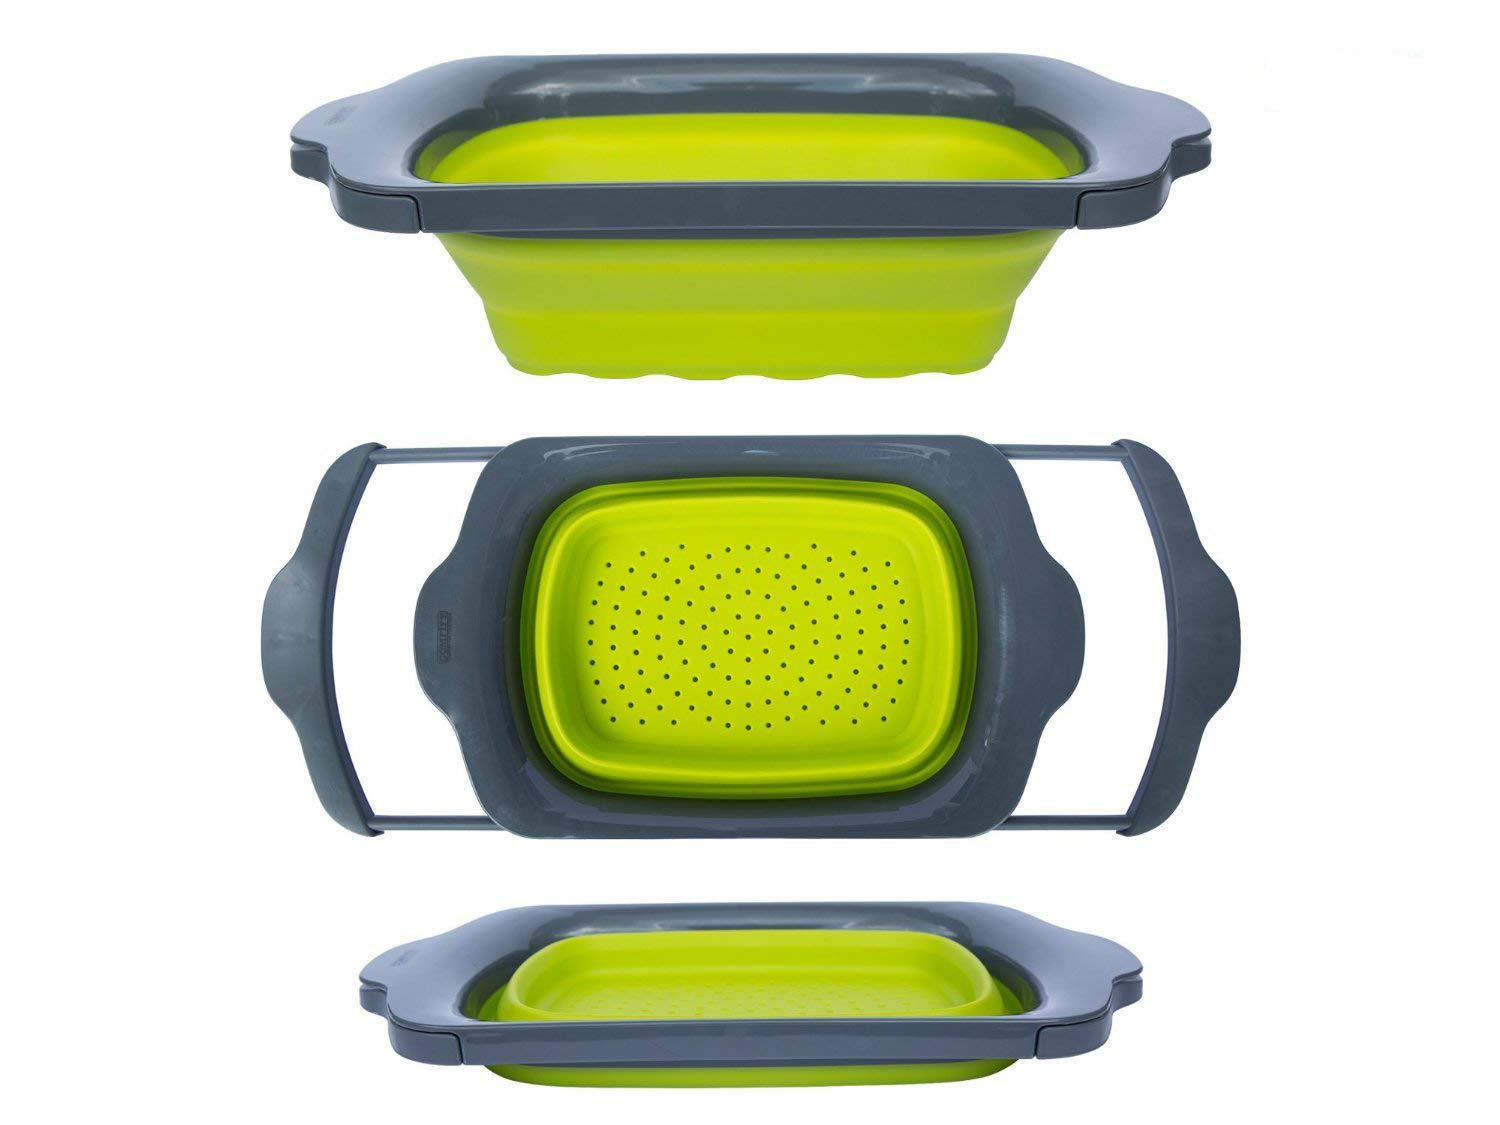 Colander Collapsible - Green & Grey - Over the Sink Colander with Handles - Folding Strainer for Kitchen 6-quart Capacity - By Comfify